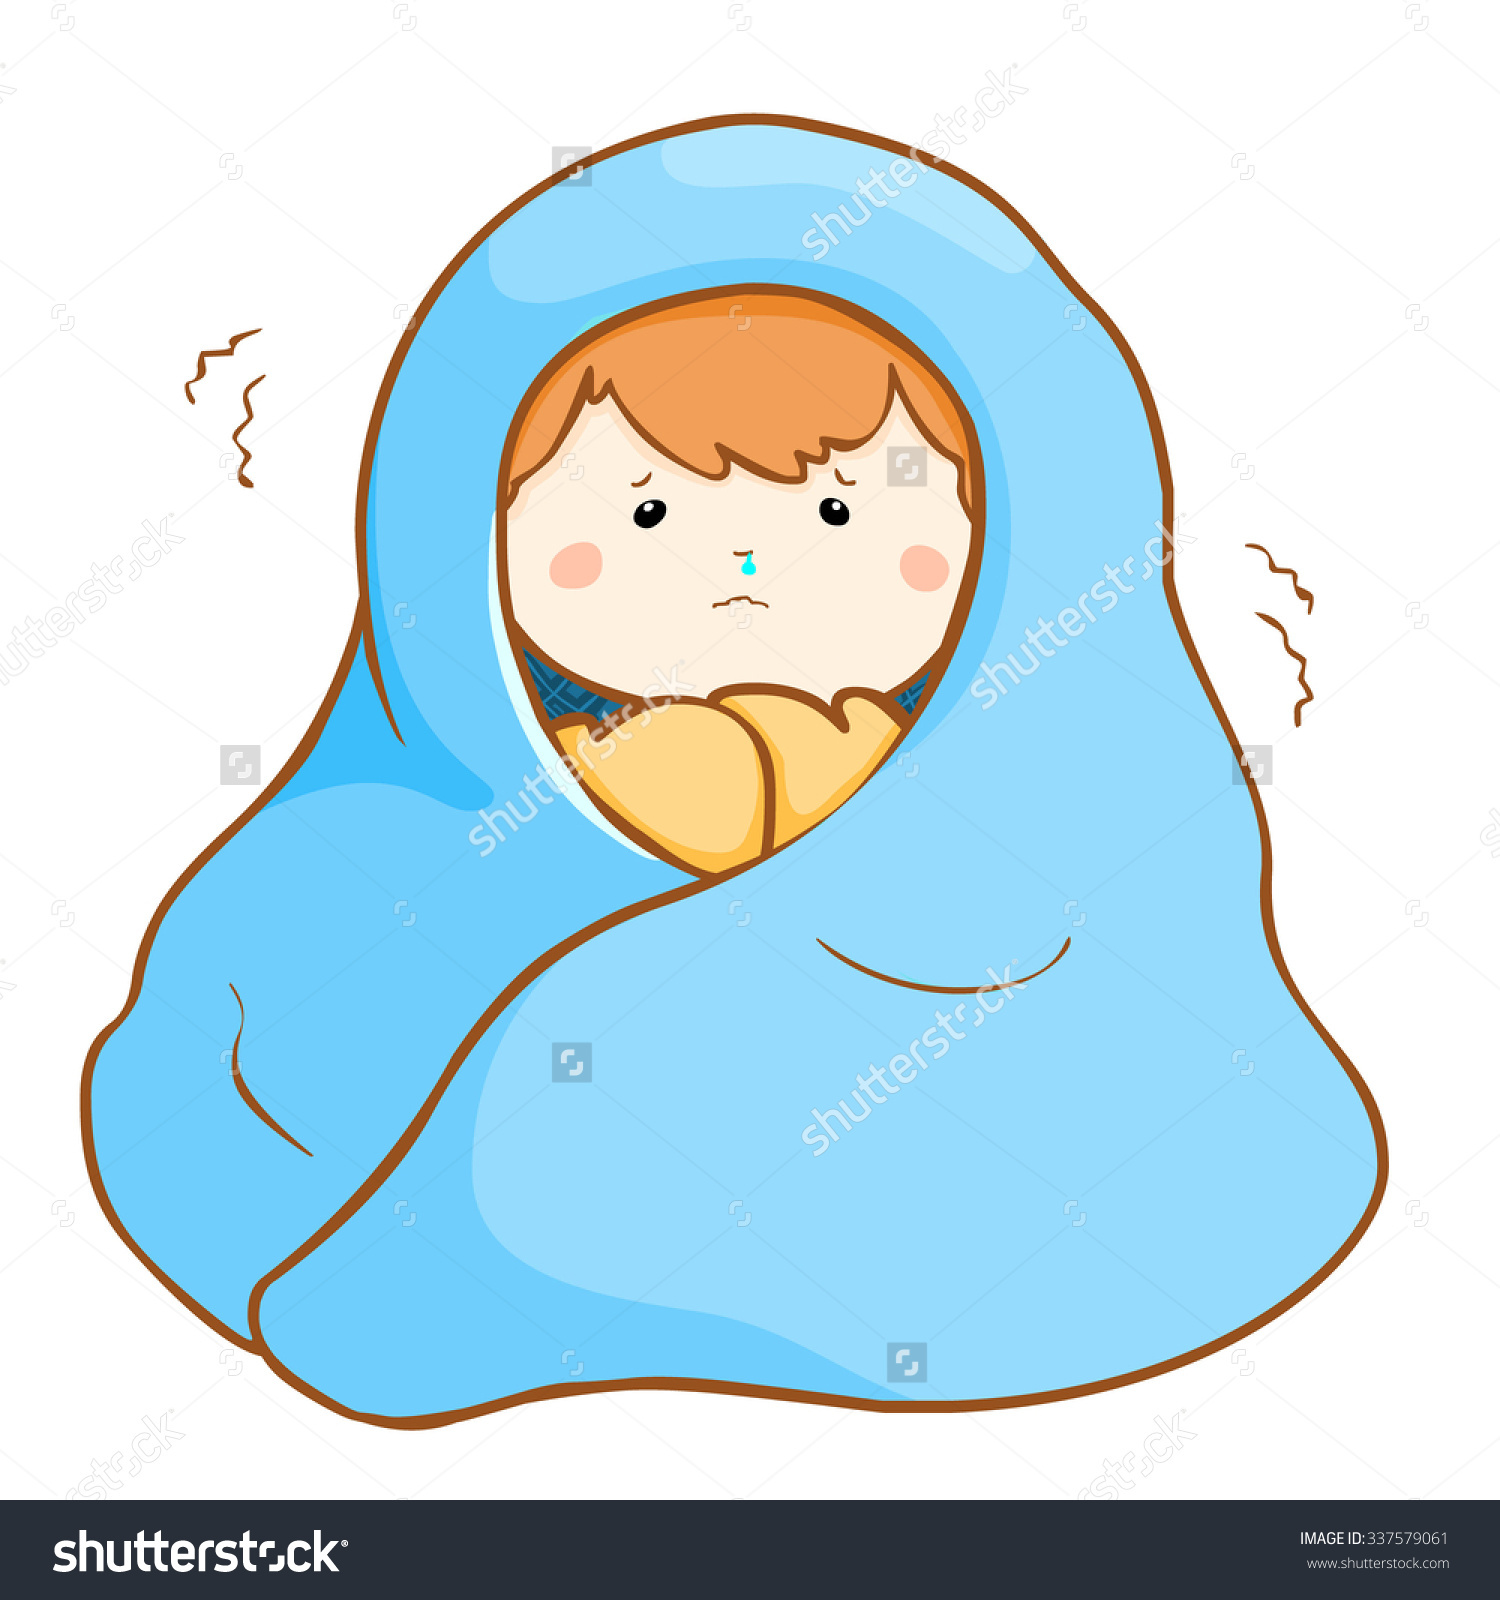 warm blanket clipart. warm blanket clipart g